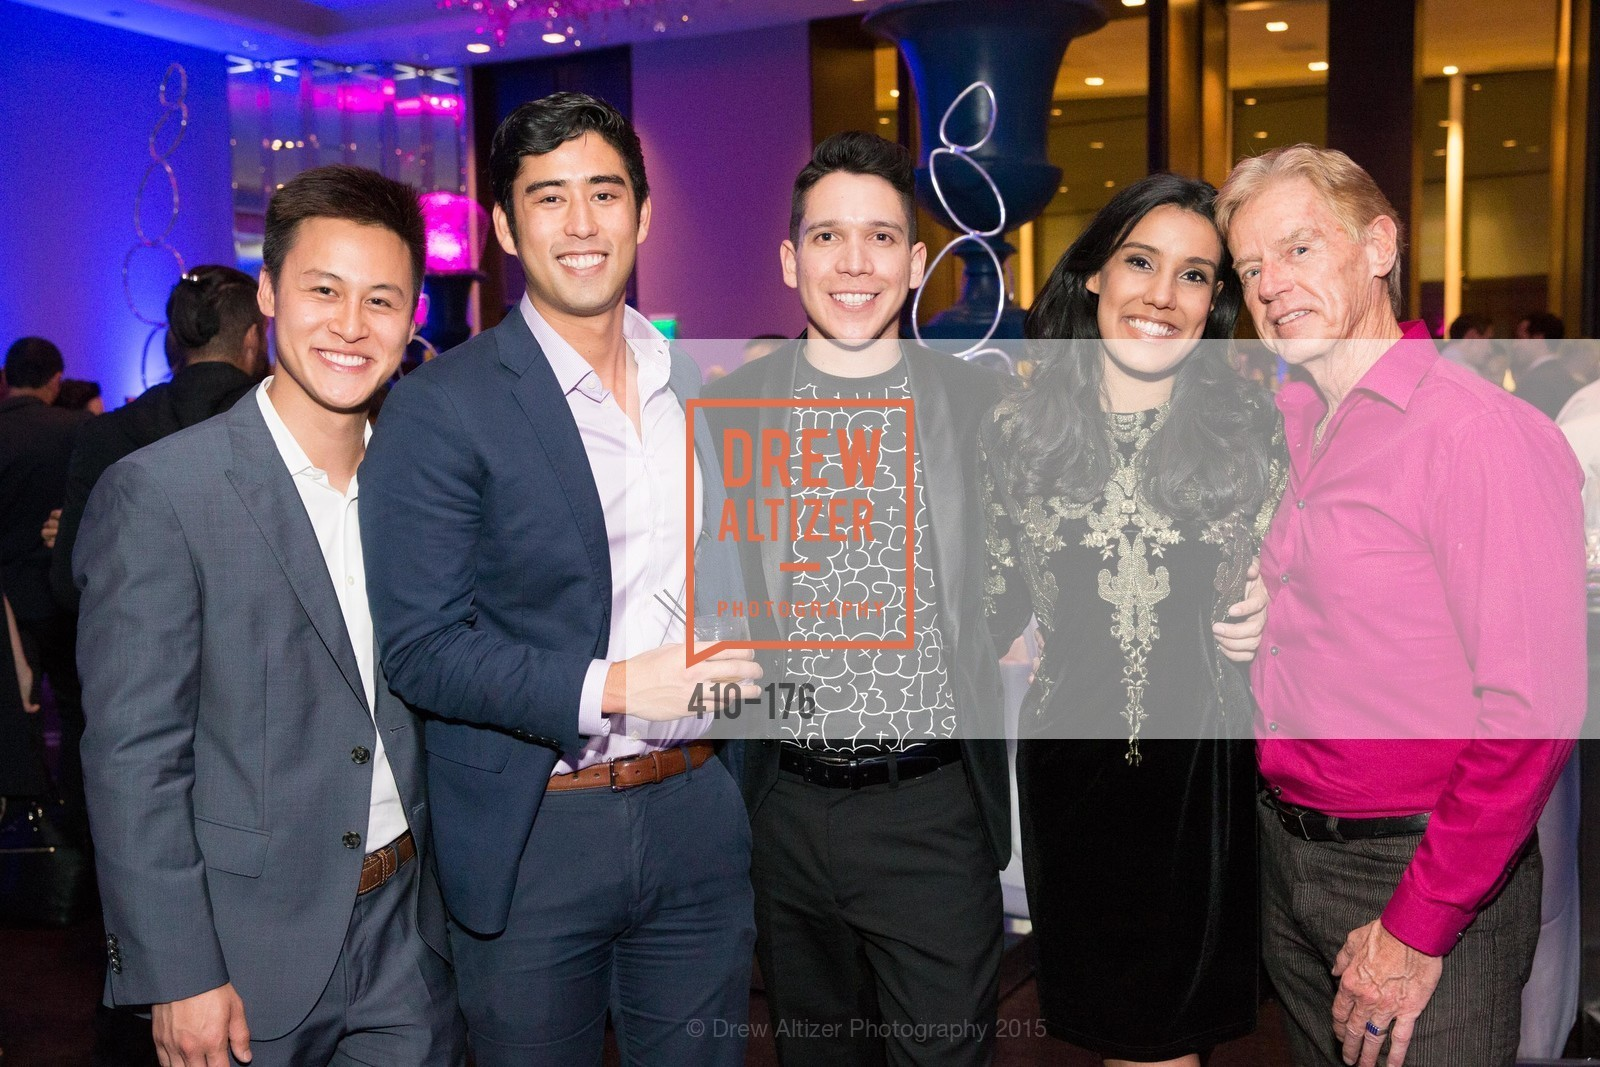 Andrew Nguyen, Alex Putinaka, Nicholas Gonzalez, Vishalli Loomba, Ken Henderson, VIP Pride Celebration 2015, St. Regis, June 18th, 2015,Drew Altizer, Drew Altizer Photography, full-service agency, private events, San Francisco photographer, photographer california